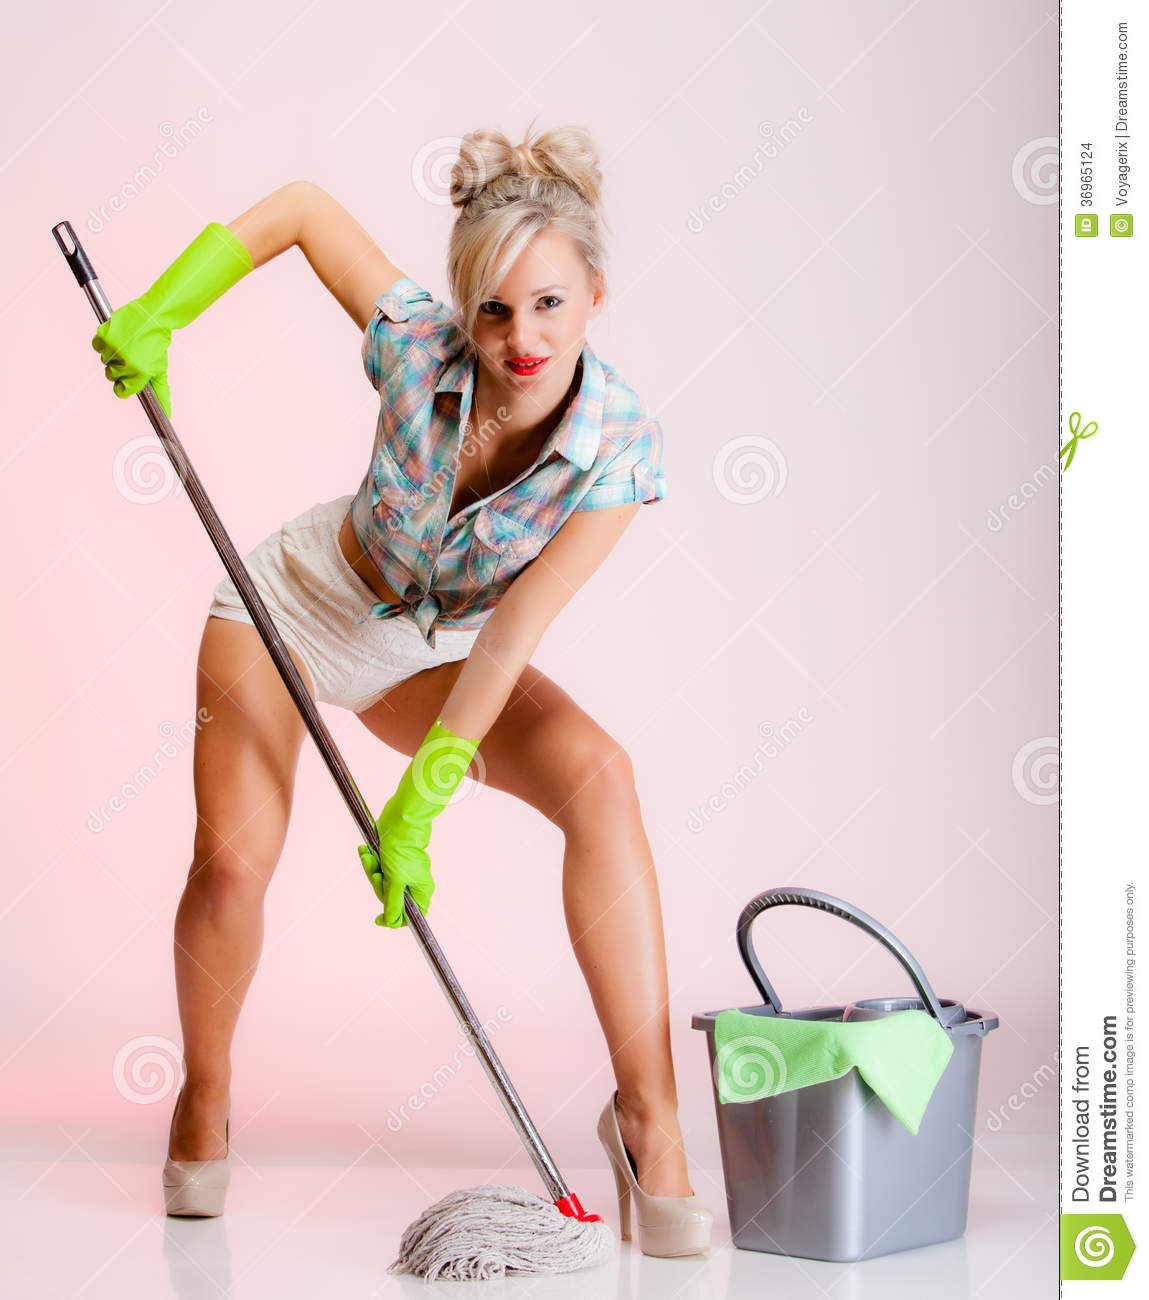 House Blogs Sexy Girl Retro Style Woman Housewife Cleaner With Mop